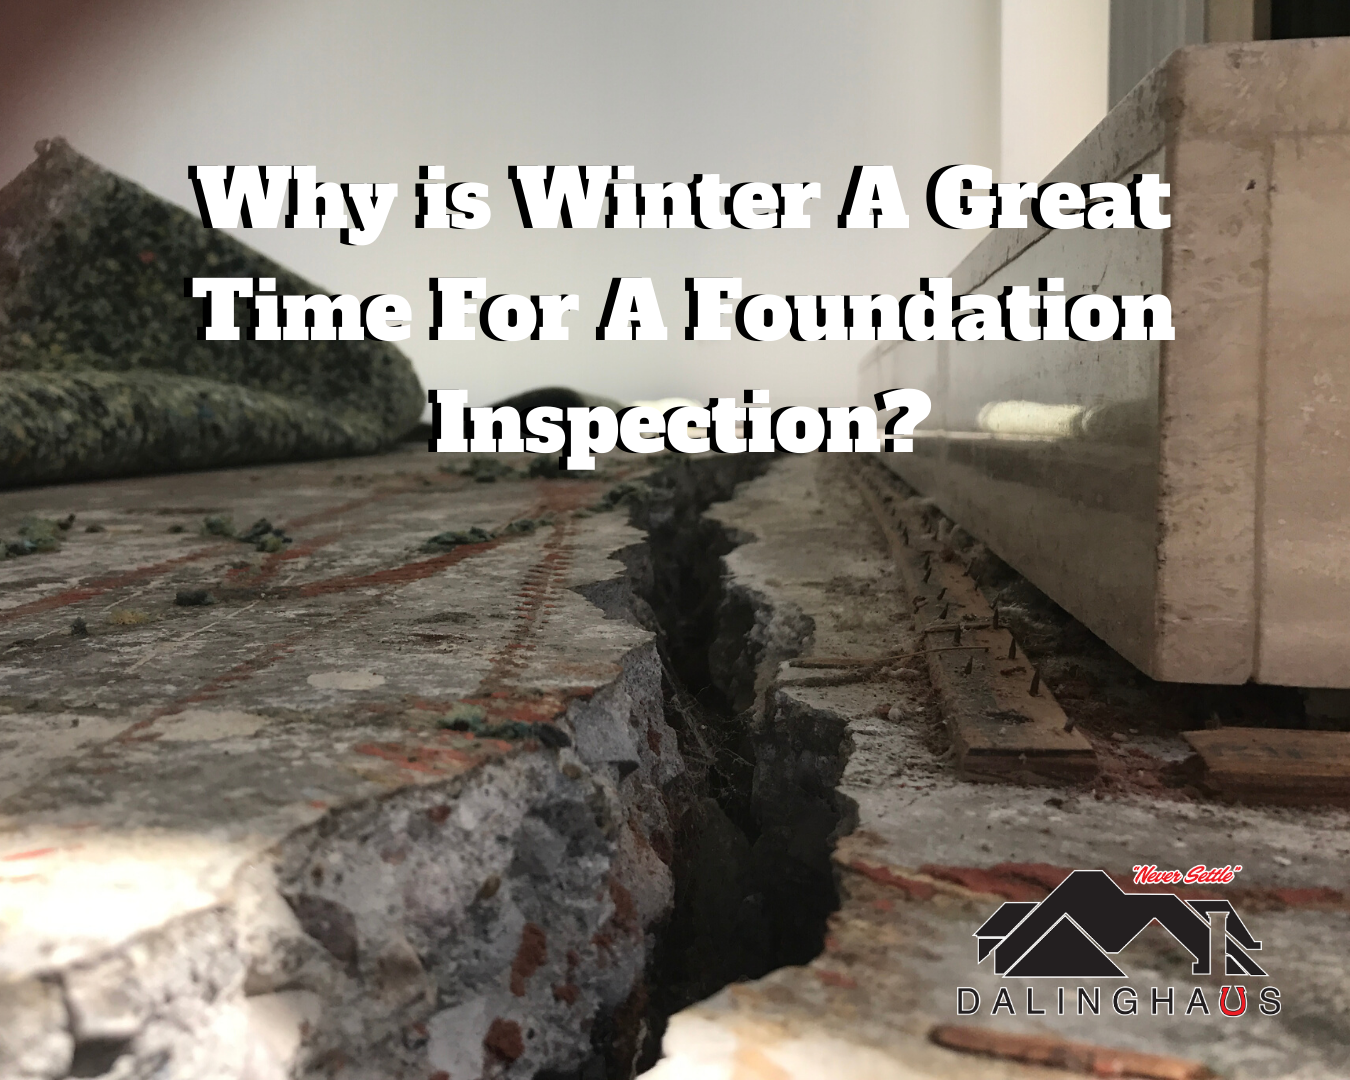 Why is Winter A Great Time For A Foundation Inspection?